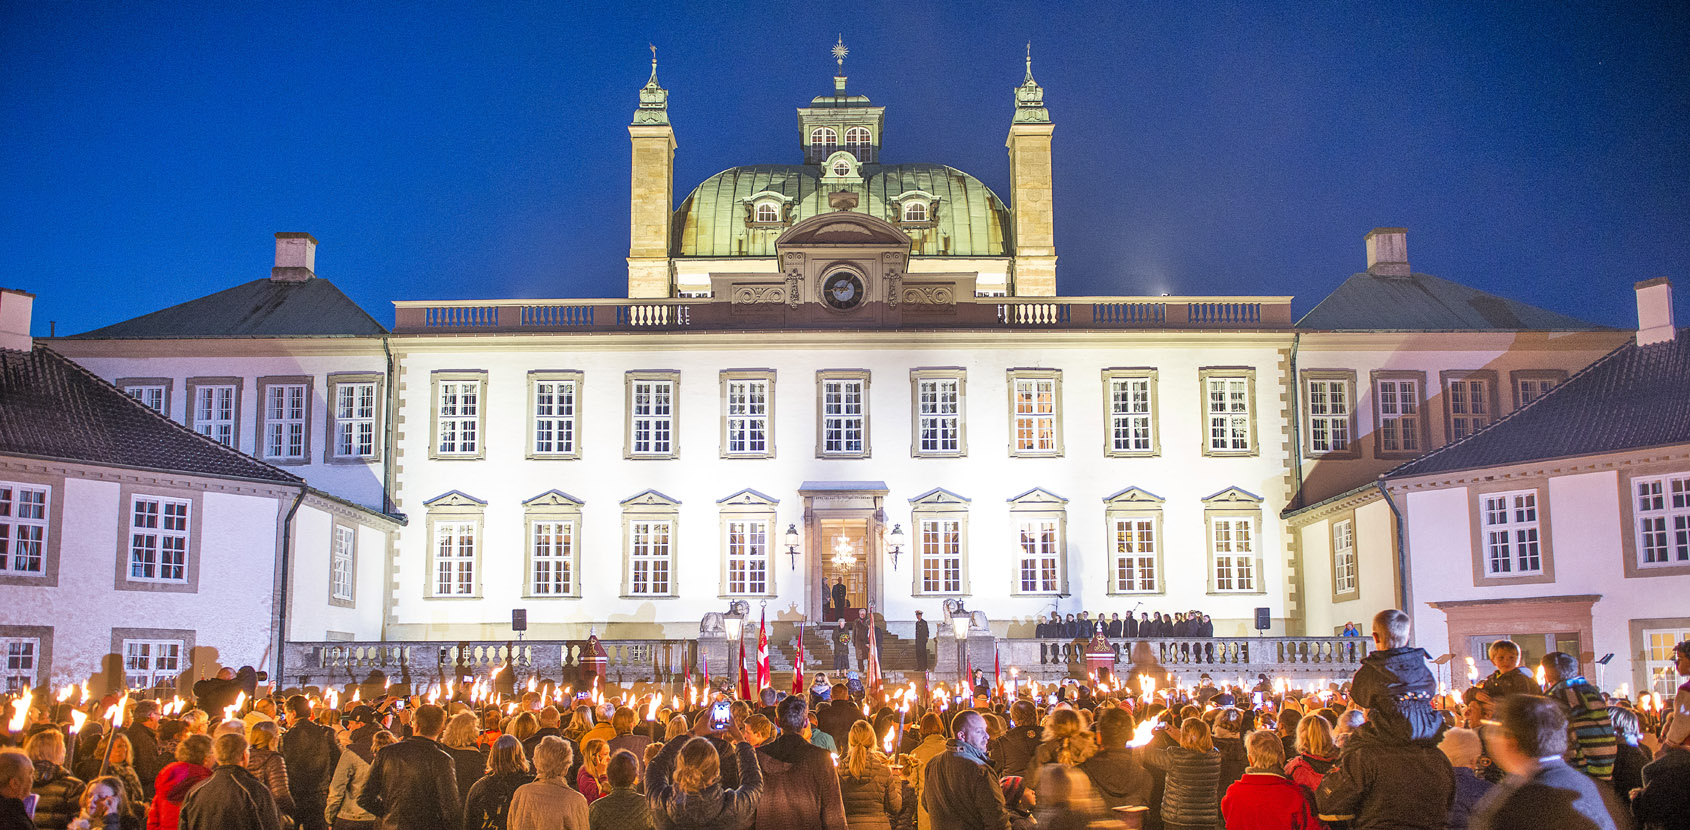 Torchlight parade as Her Majesty the Queen and the Prince Consort move into Fredensborg April 2015. Foto: Thomas Rahbek